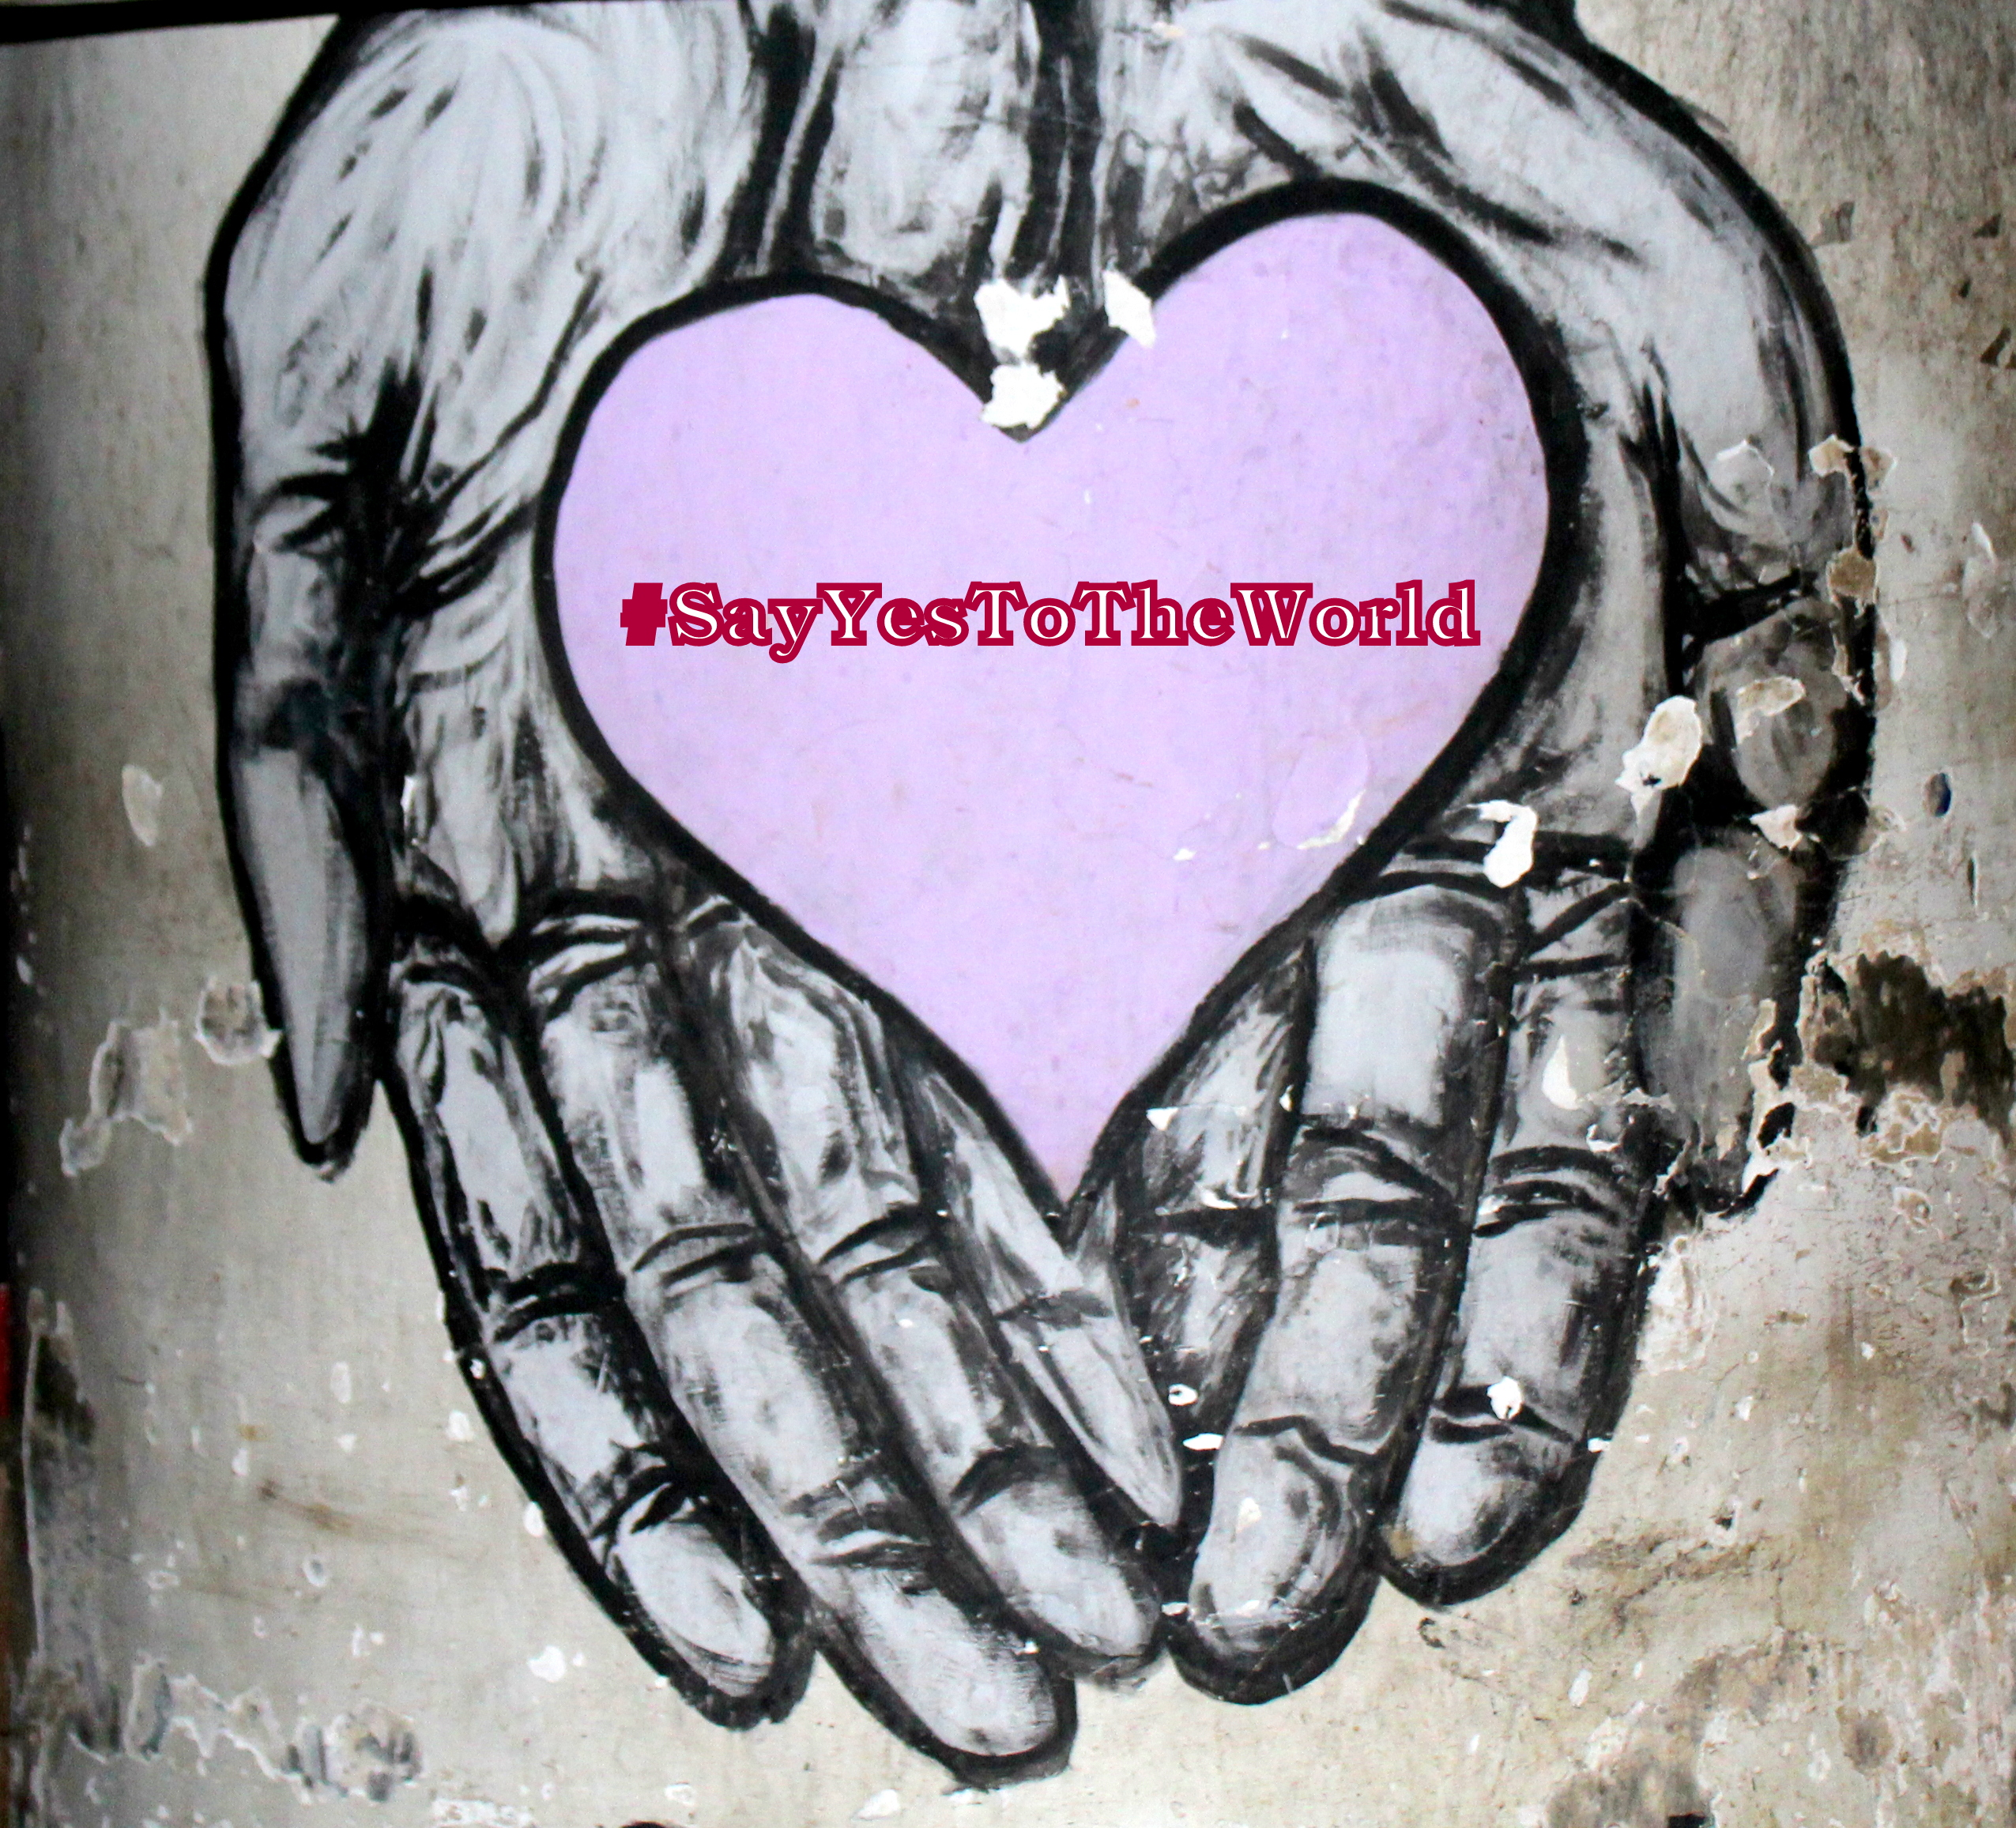 Say Yes to the world